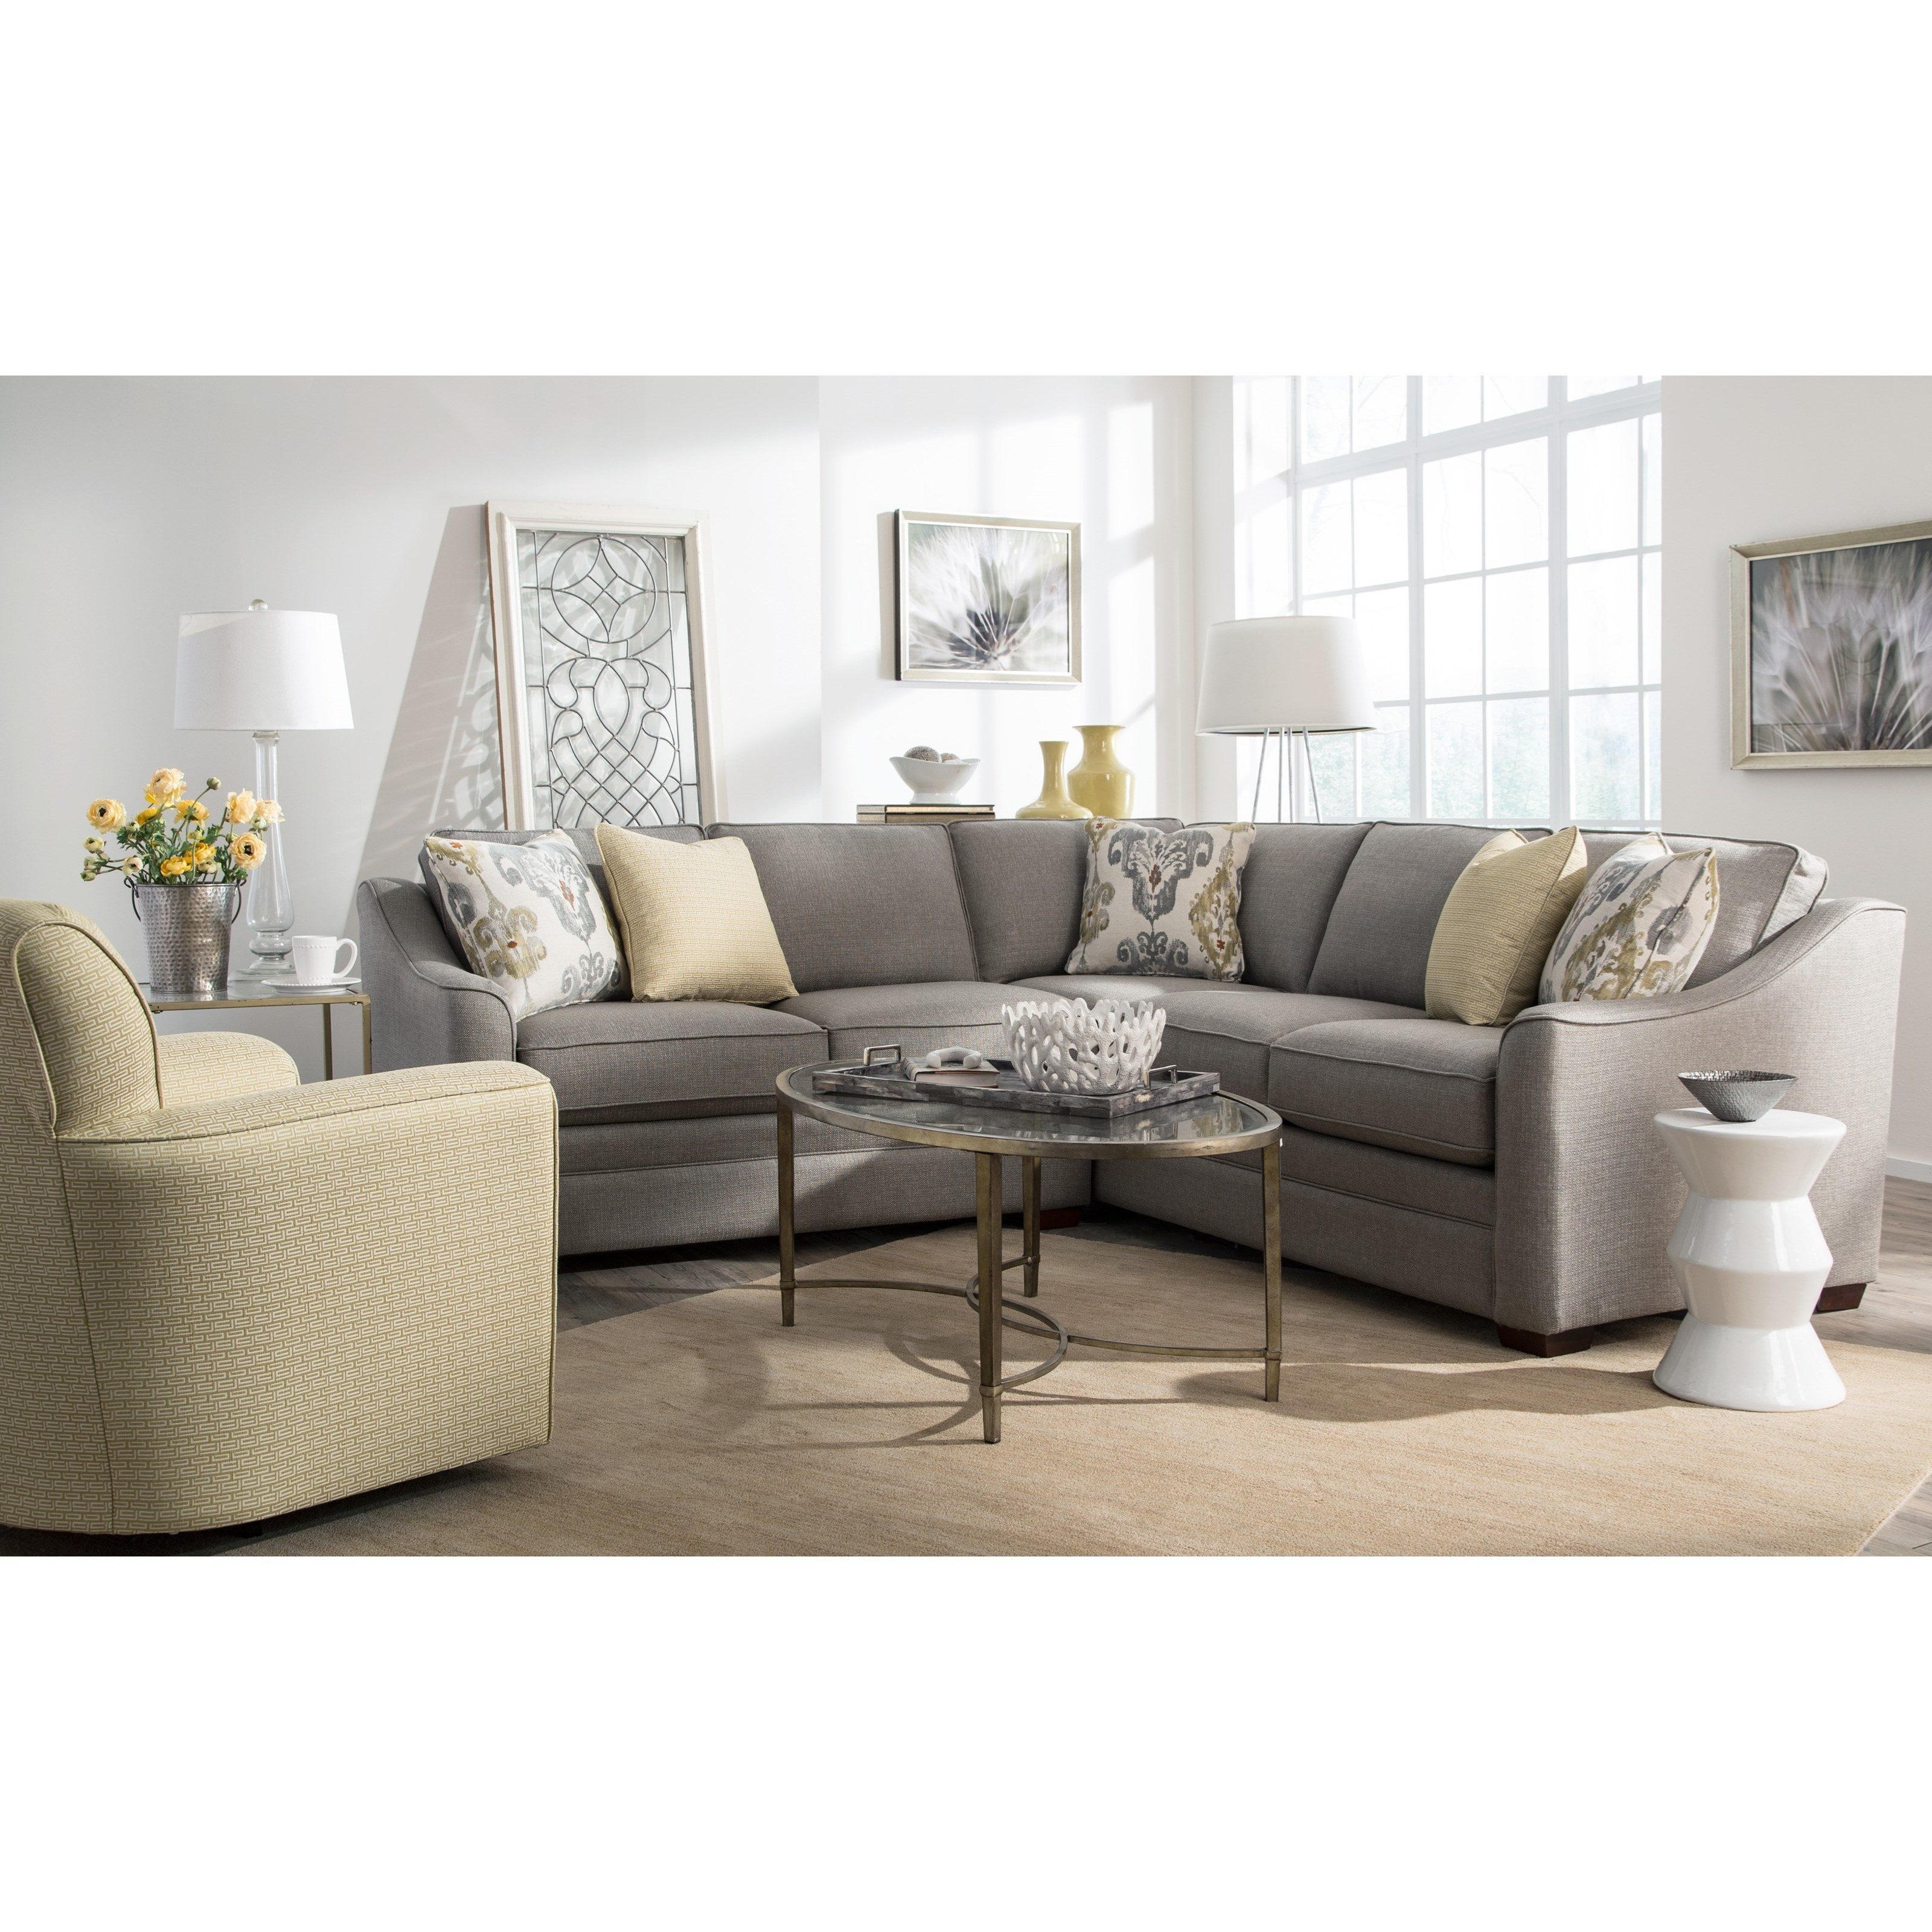 Two Piece Customizable Corner Sectional Sofa with Right Return by